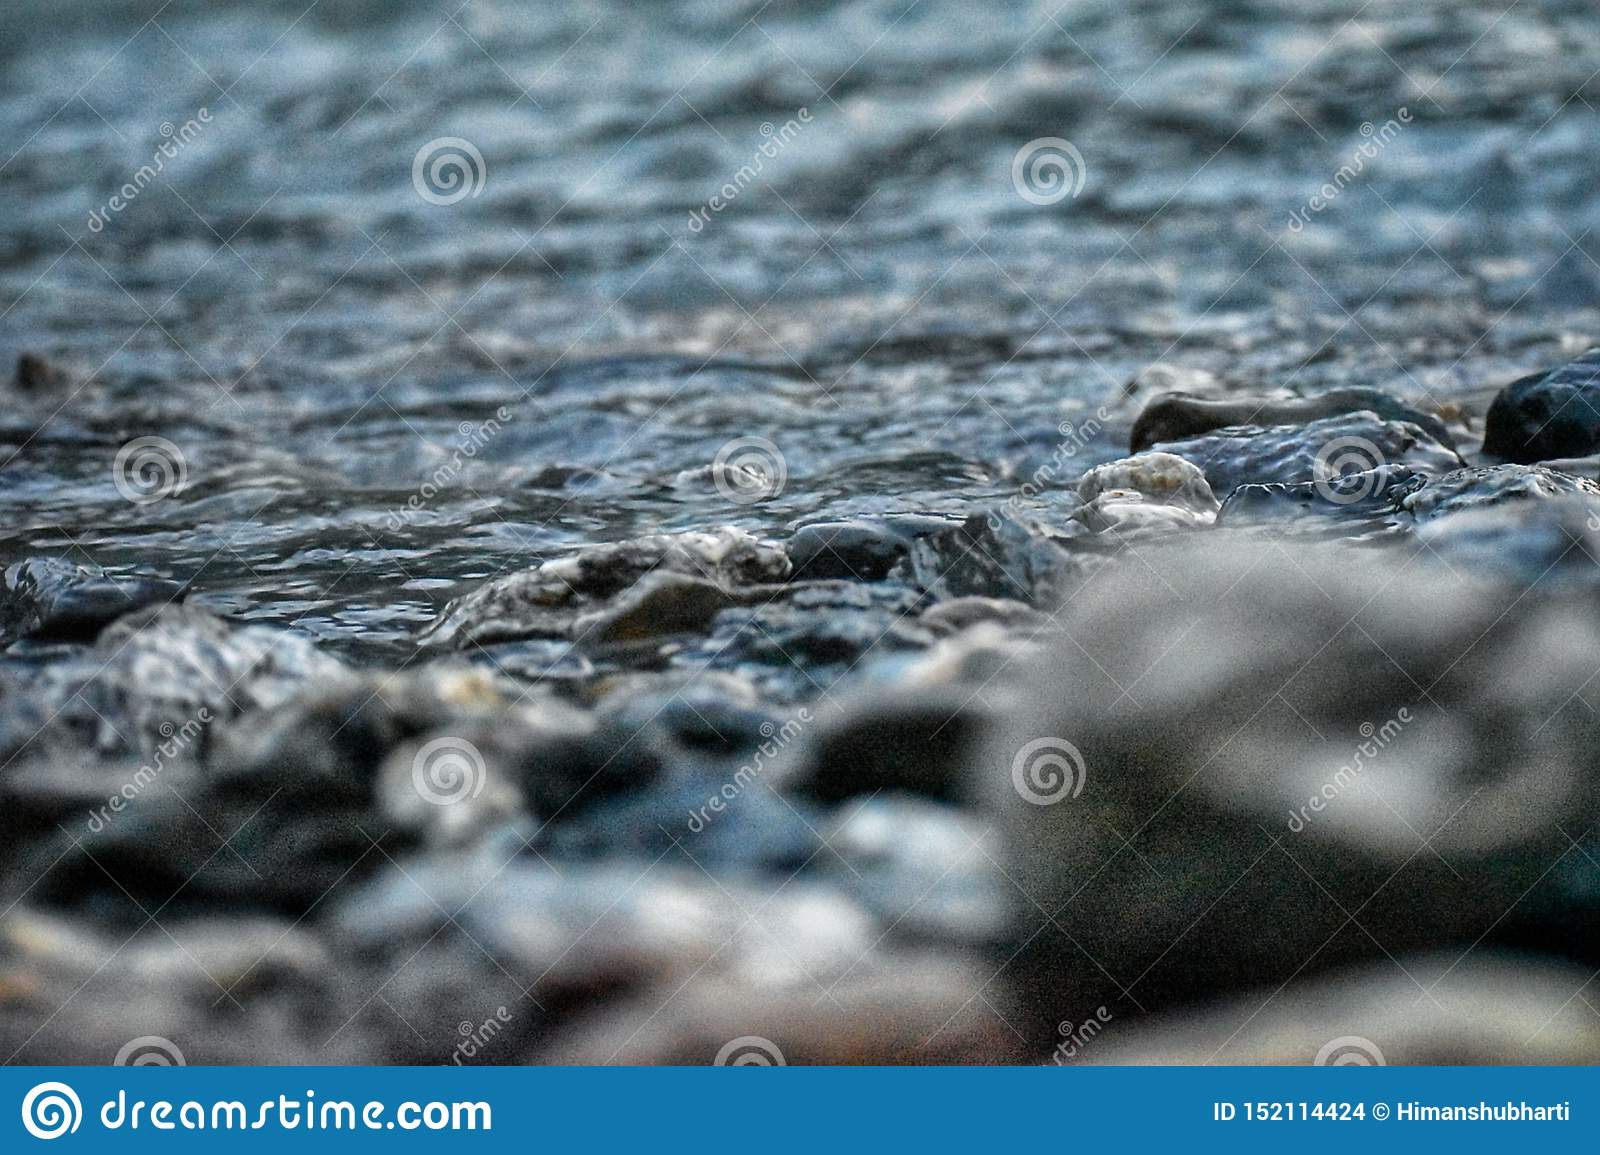 Shore of a river with stones and water with blur front view